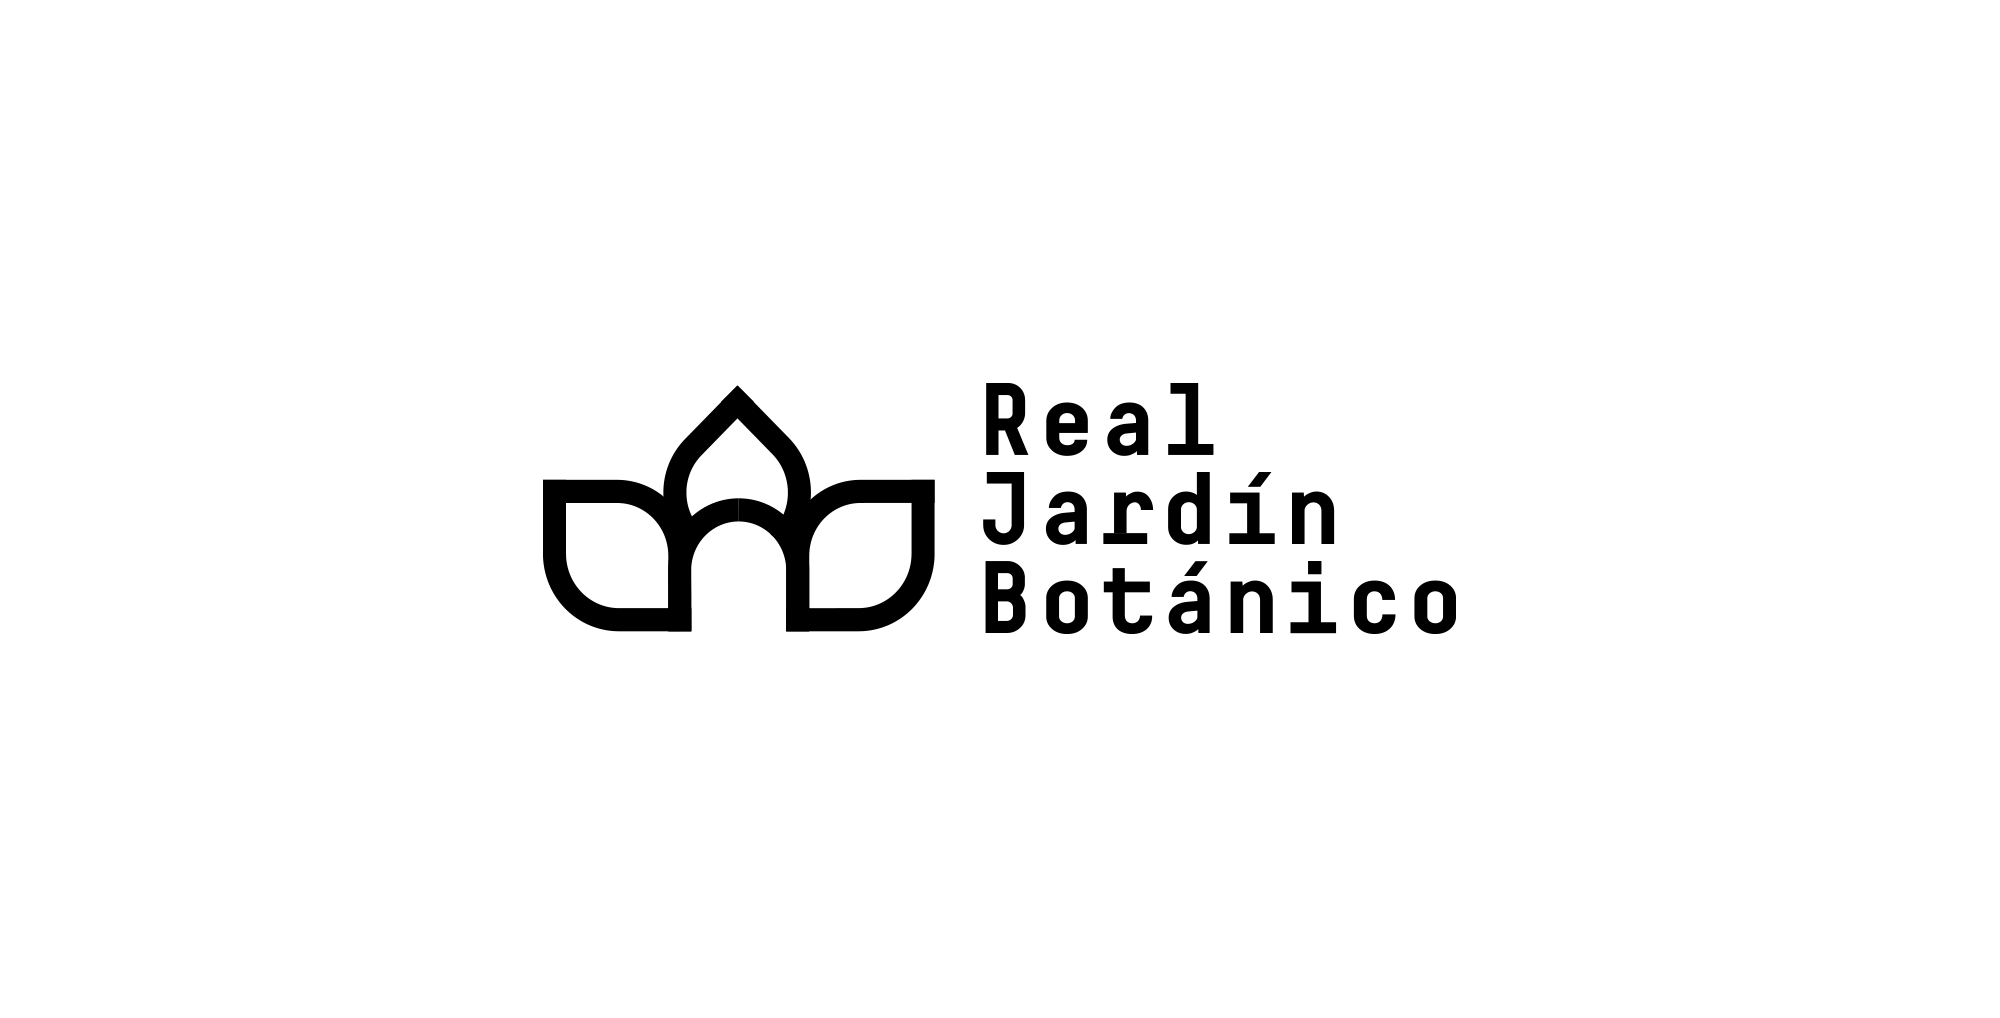 Real Jardín Botánico Branding by The Woork Co